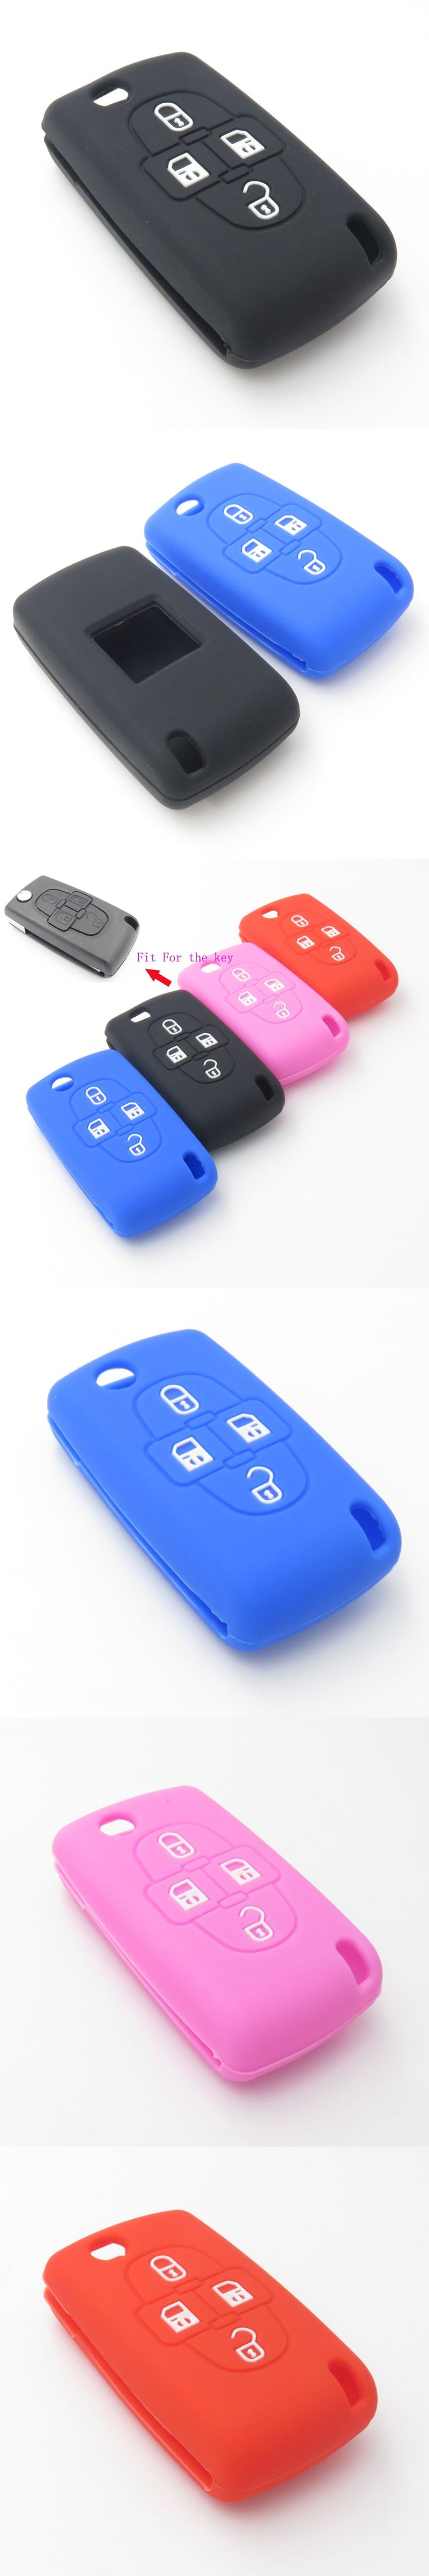 Silicone Car Key Fob Cover Case Skin For Peugeot Car Key 4 buttons For Peugeot 1007 807  Cocolockey